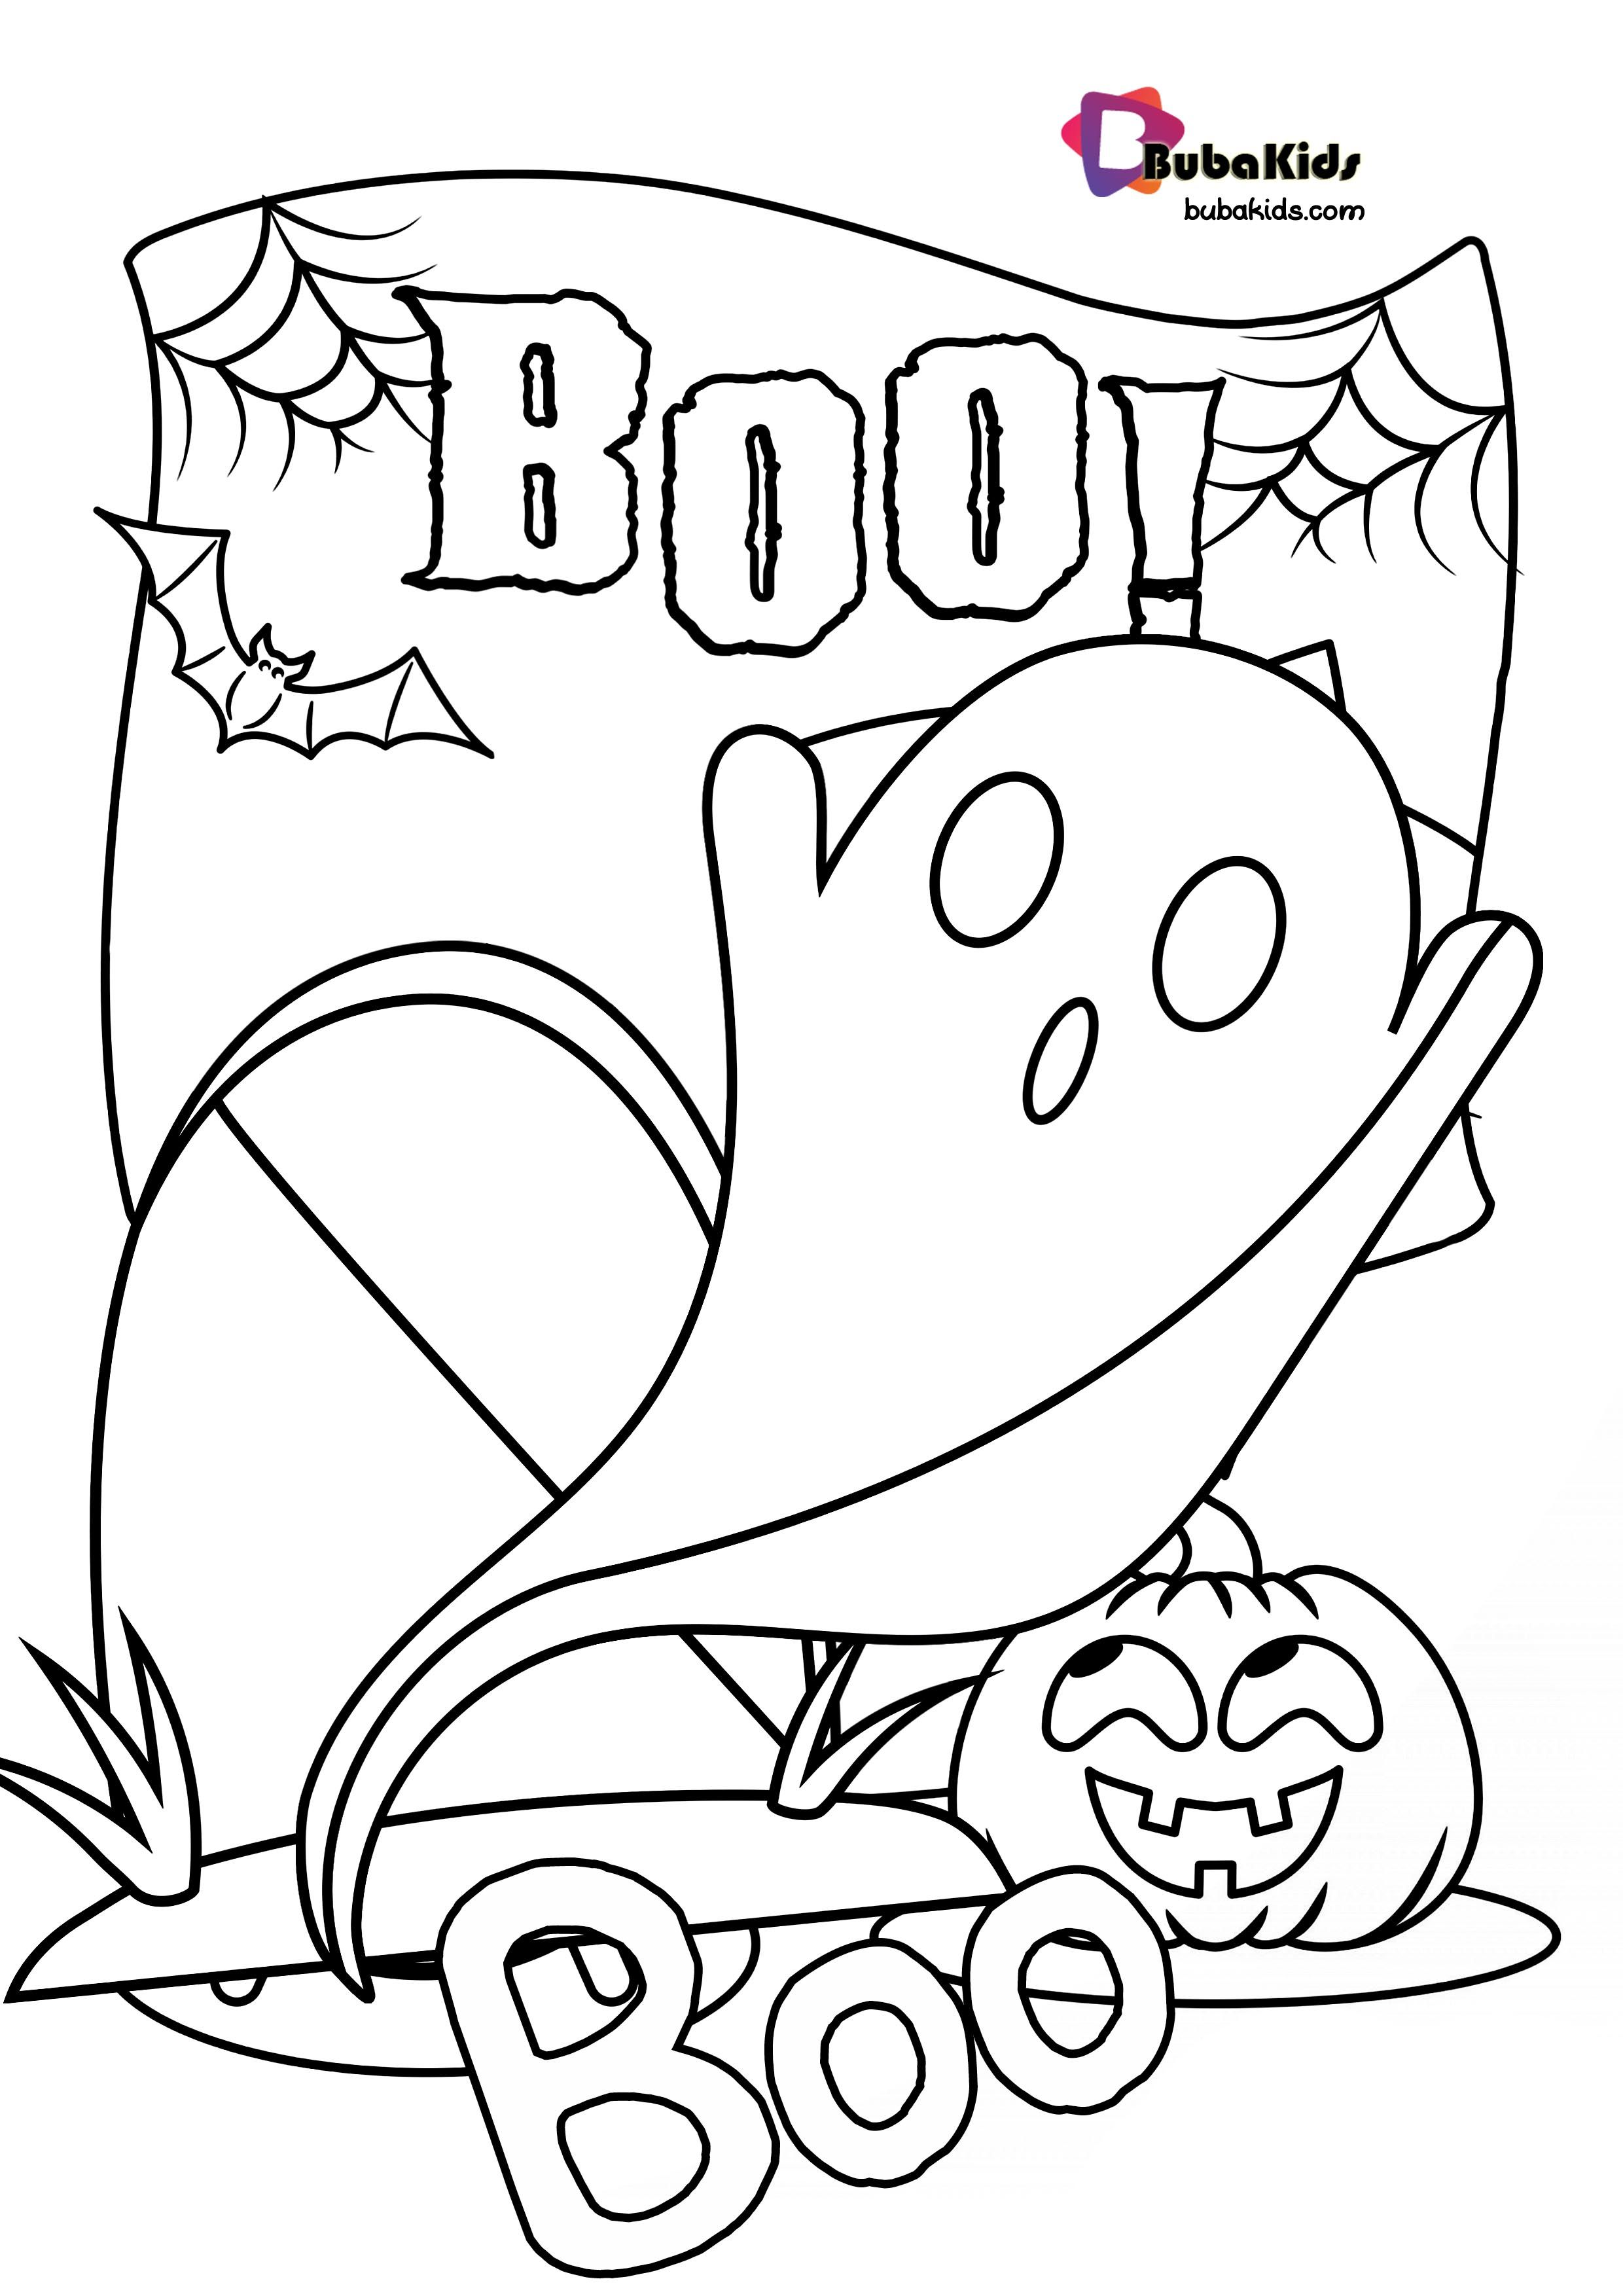 Bubakids Boo Halloween Coloring Page Boo Coloringpage Halloween Boo Coloringpage Hal Halloween Coloring Cartoon Coloring Pages Halloween Coloring Pages